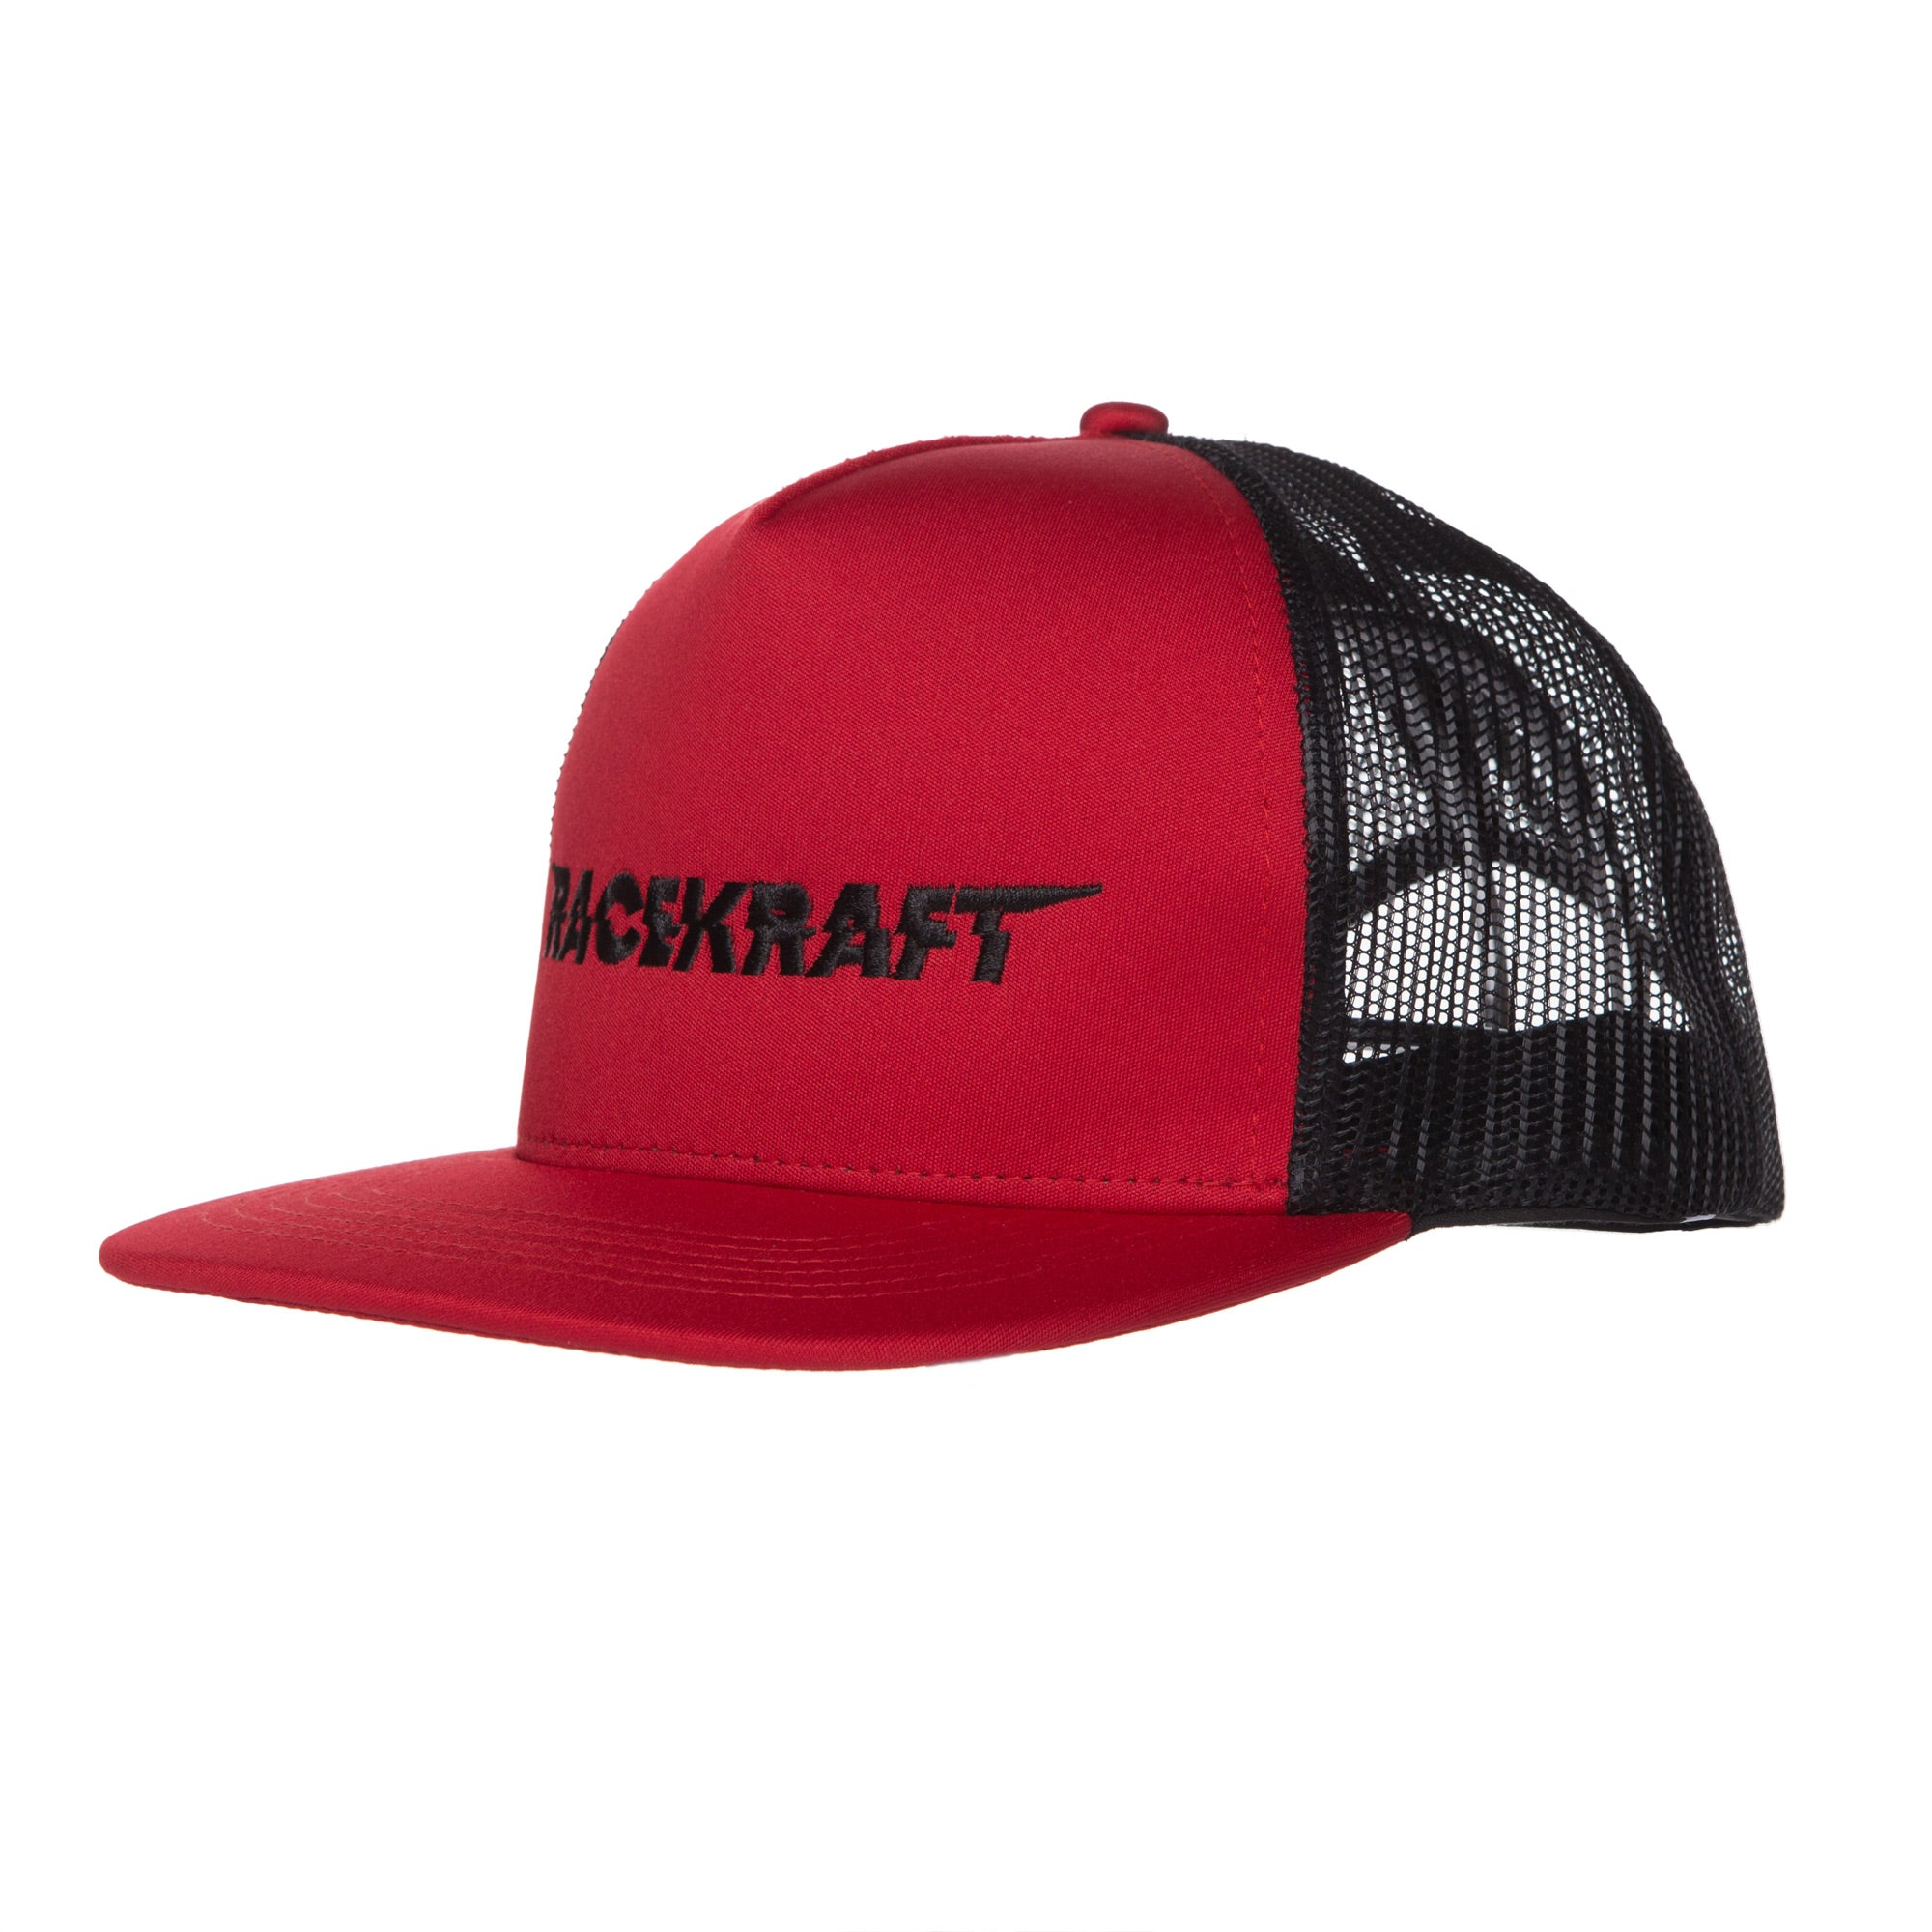 "5 Panel Red/Black Mesh Flatbill RaceKraft ""Black RaceKraft"" Trucker Hat"